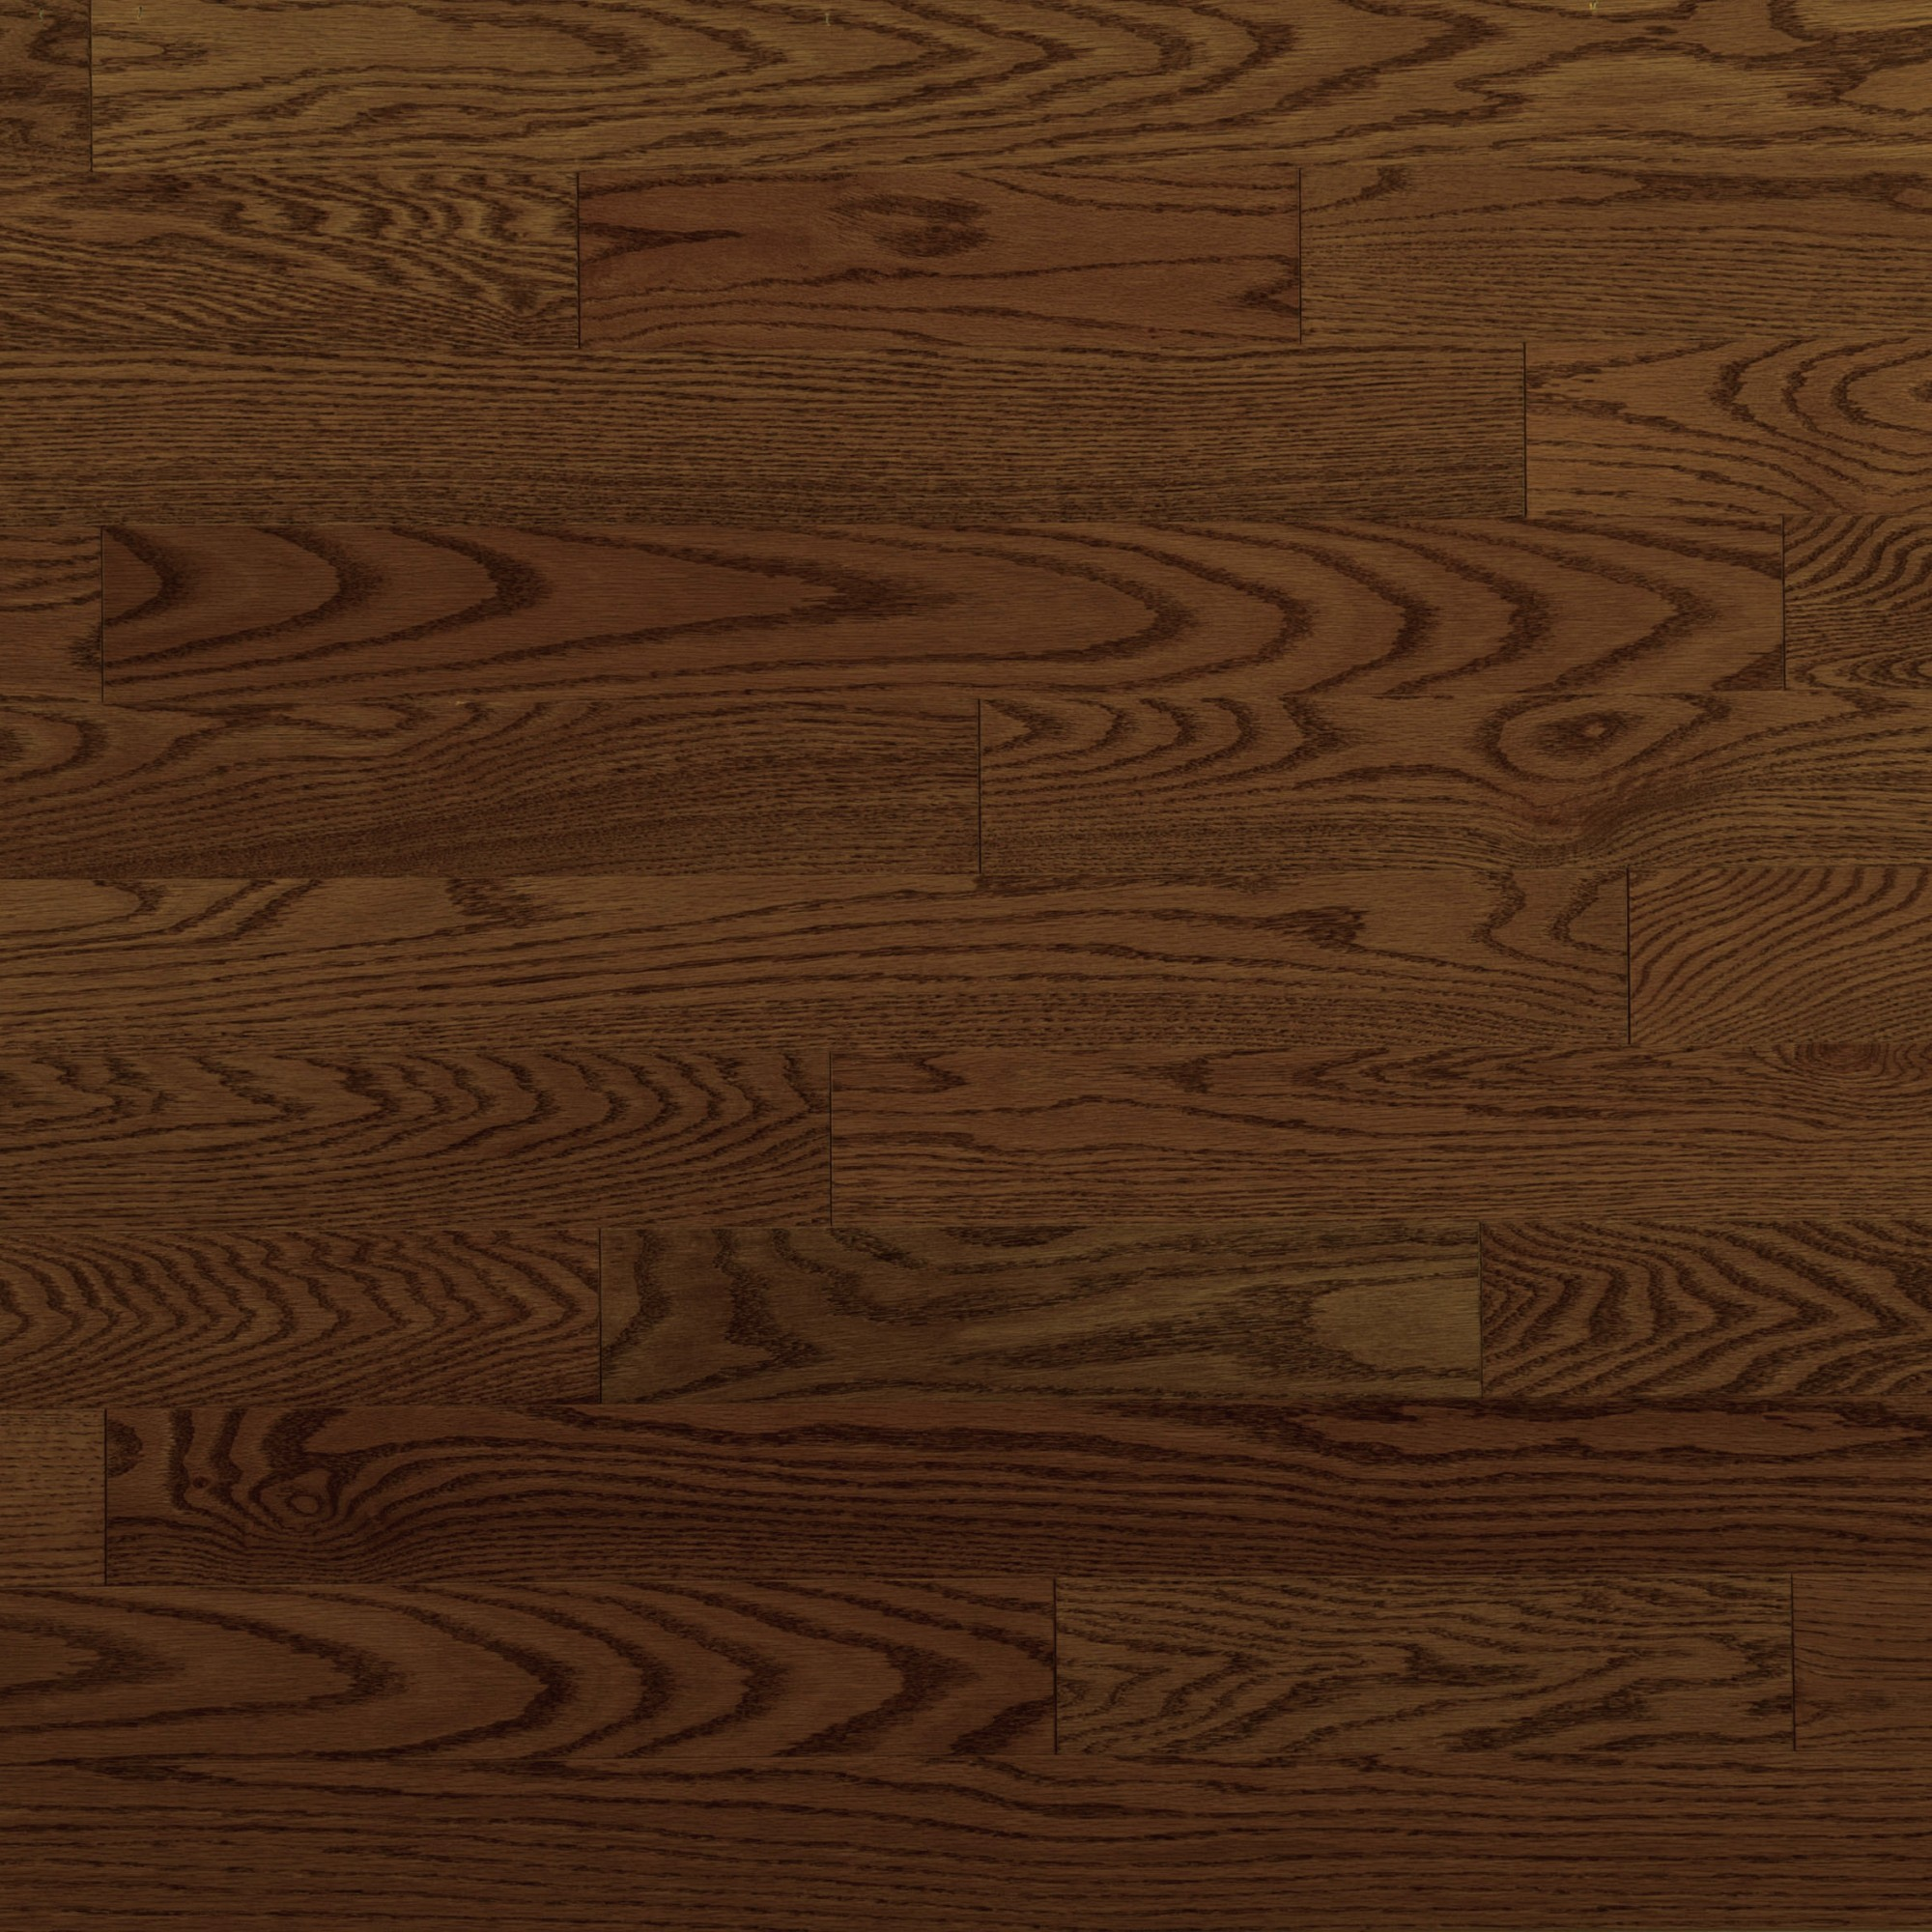 Du Chateau Flooring Reviews: Red Oak Rich Oak Mirage Hardwood Floors